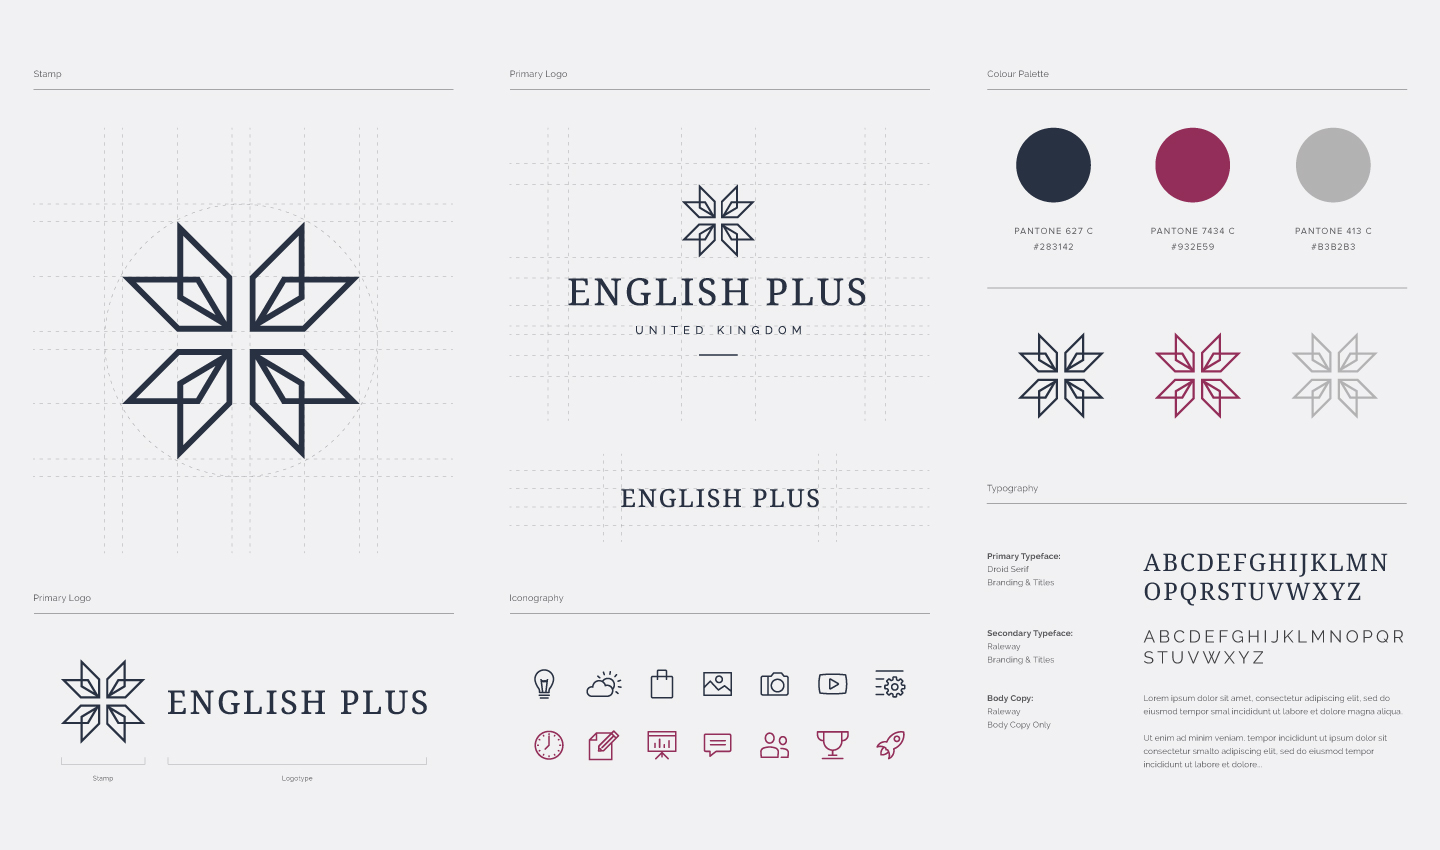 English Plus Brand Guidelines